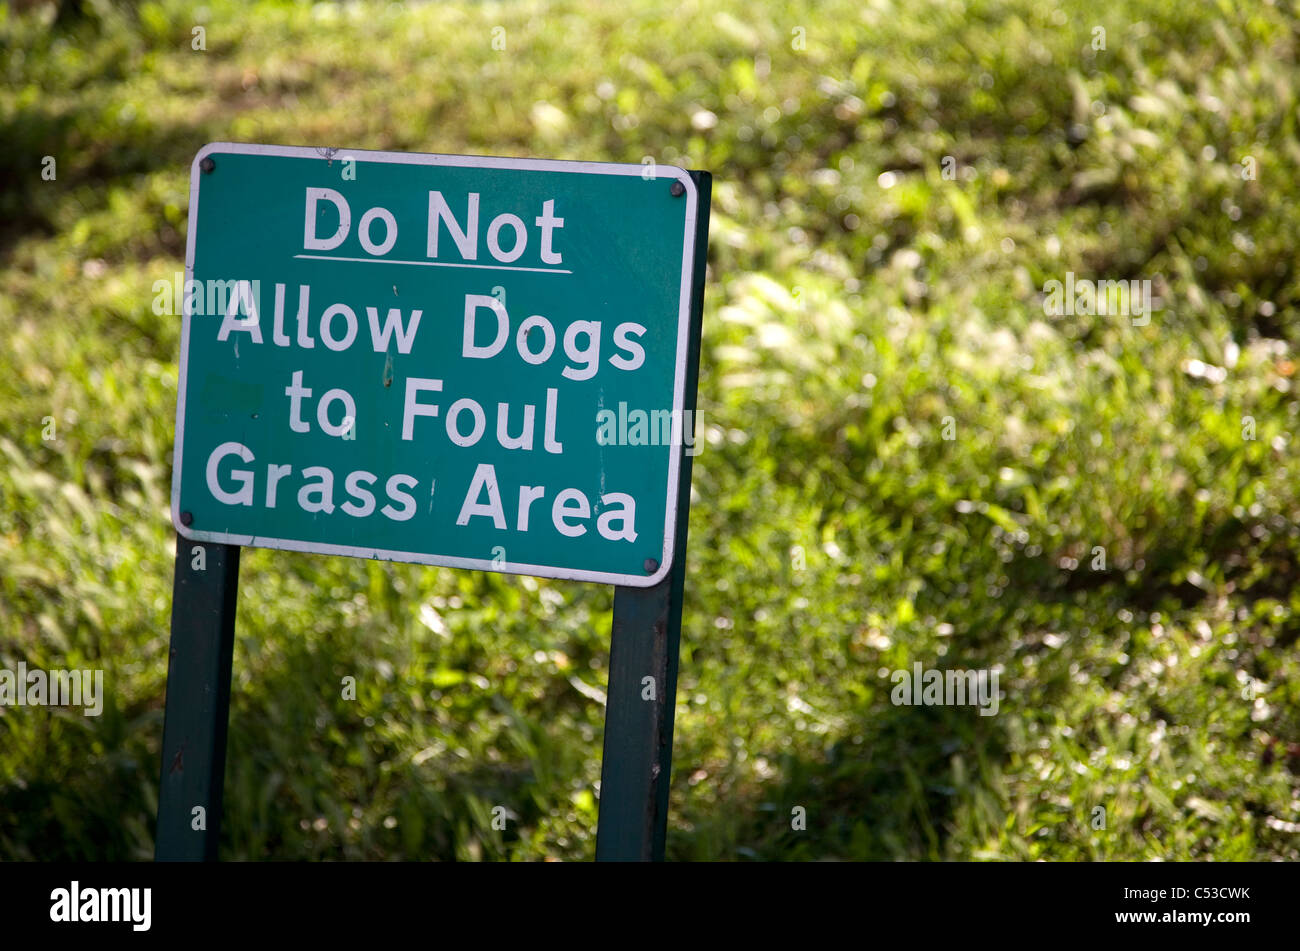 Do Not Allow Dogs to Foul Grass Area - sign - Stock Image